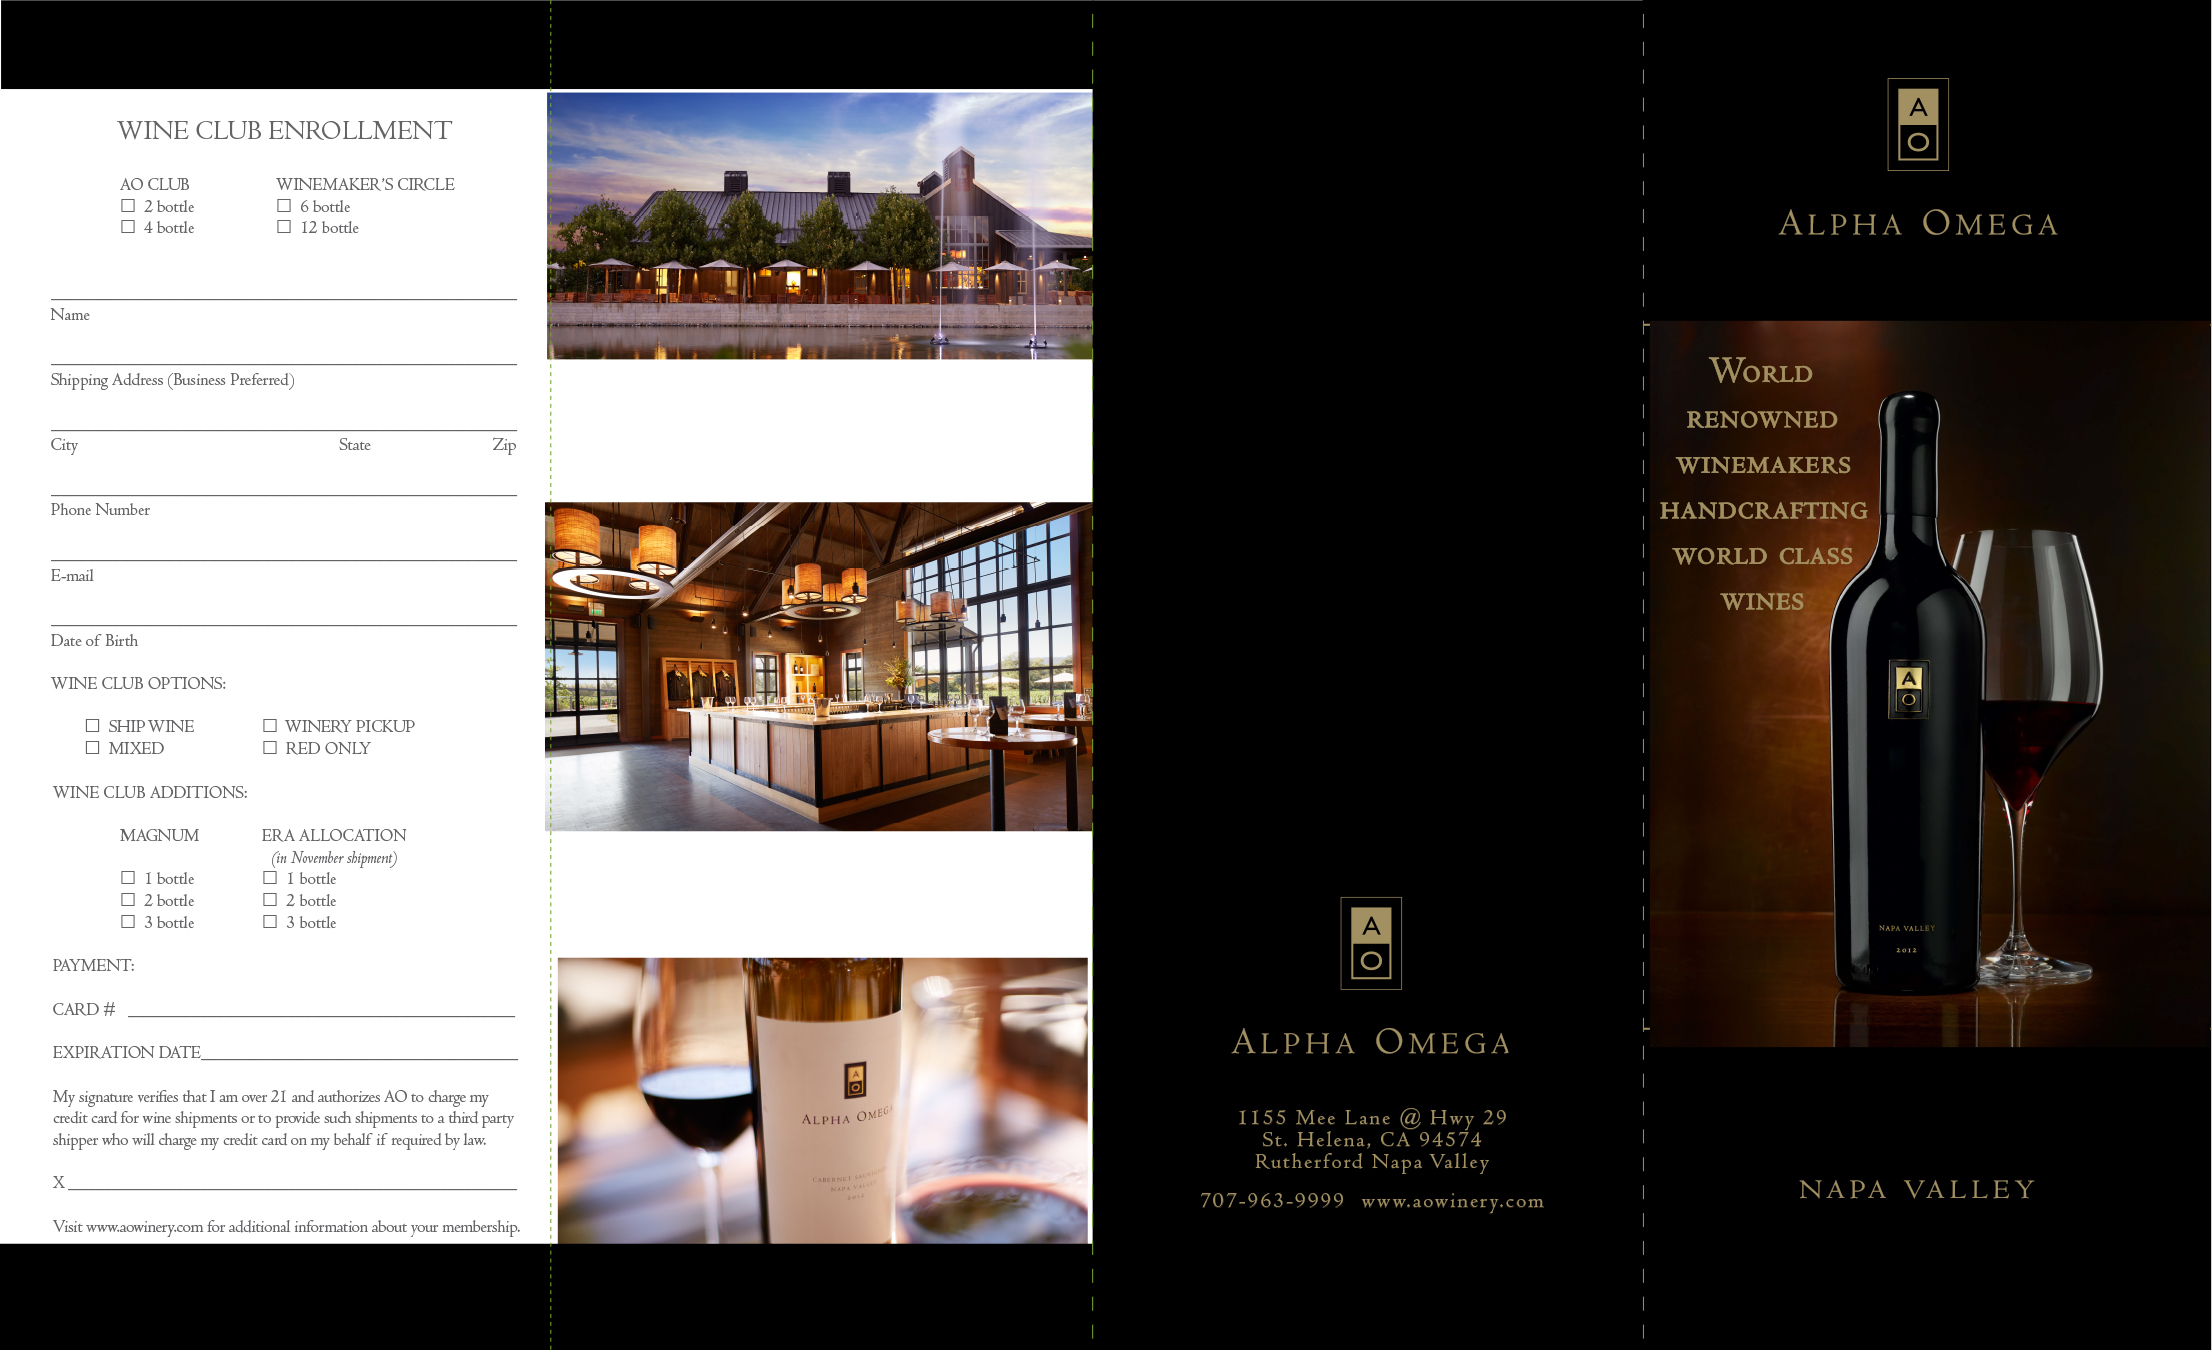 AO_WineryBrochure-dropped-pictures-2-1.jpg